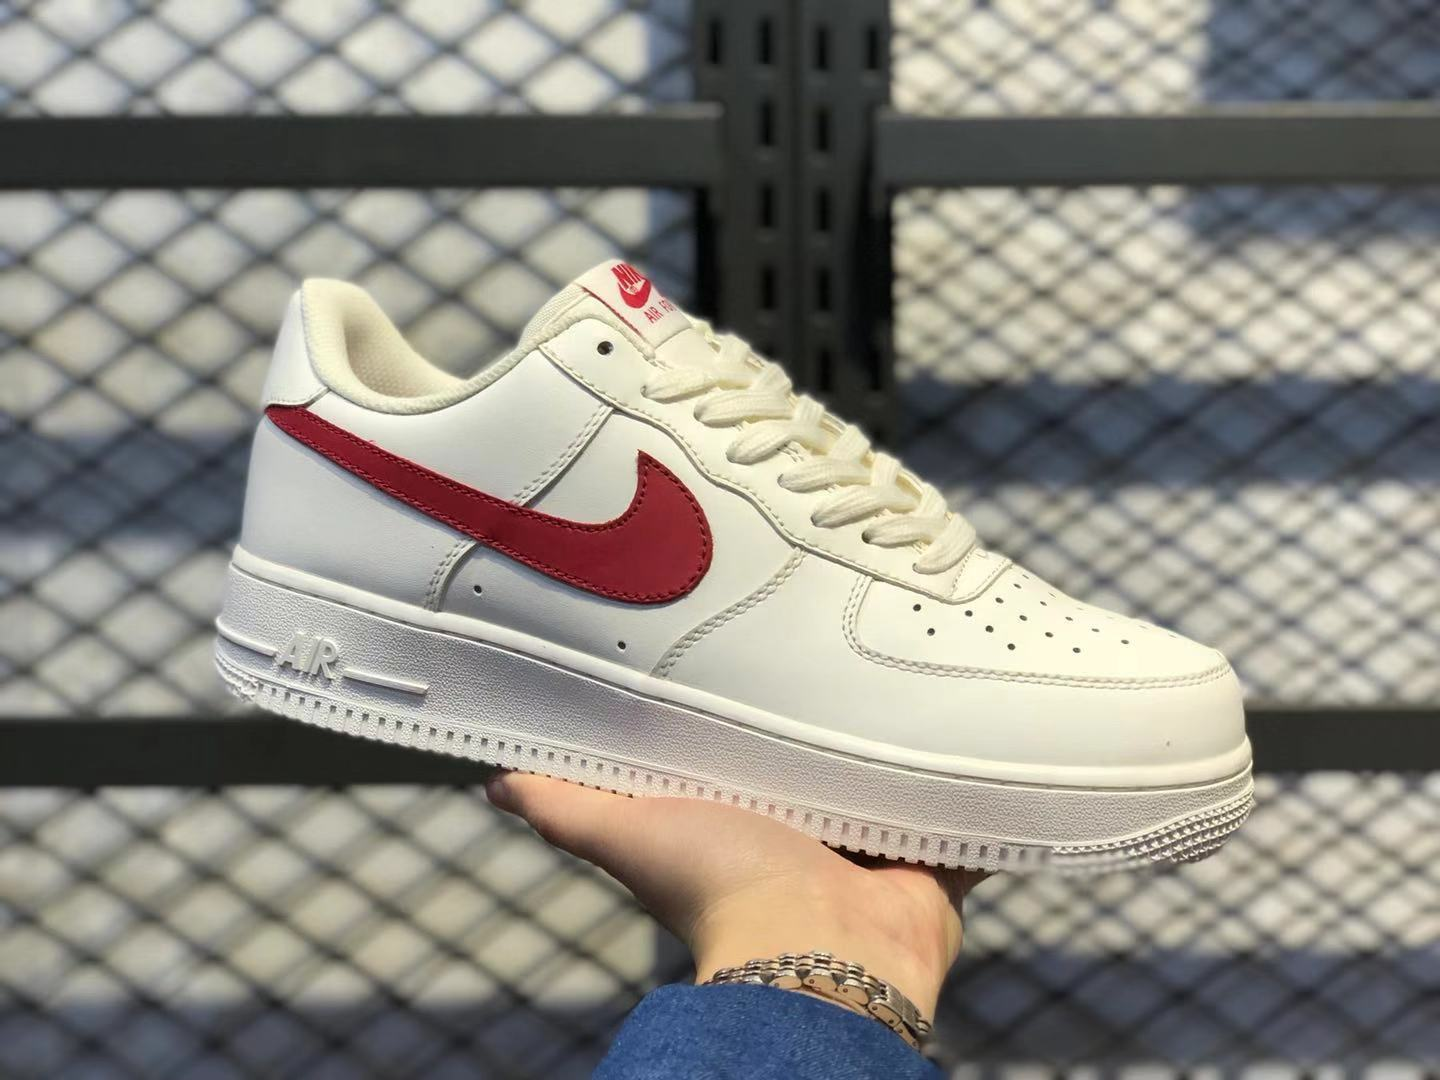 2020 Newest Nike WMNS Air Force 1 Low Sail/University Red Casual Shoes 315122-126